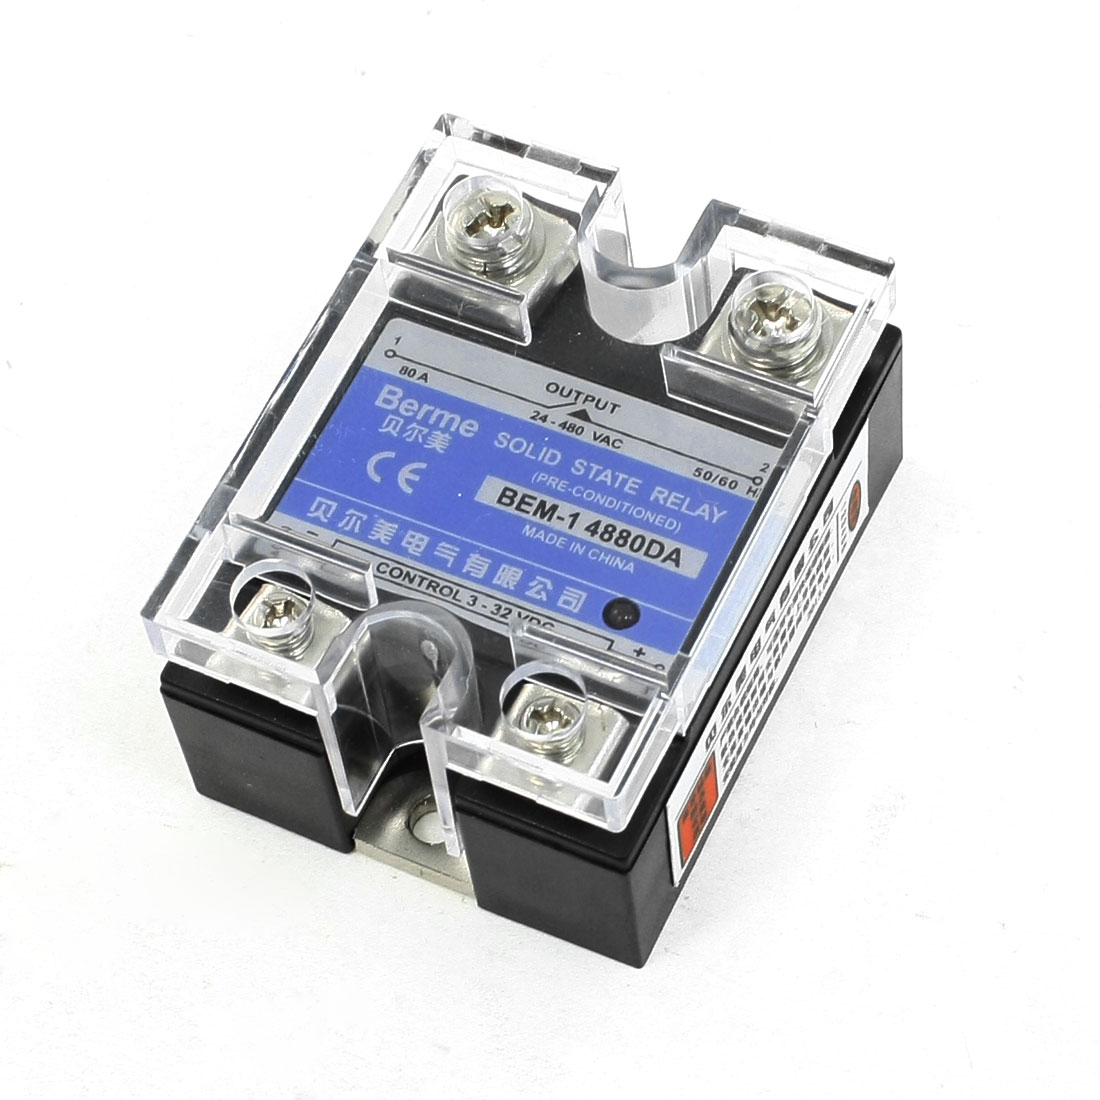 Fluted Side LED Indicator Light DC/AC Solid State Relay 80A 24-480VAC 3-32VDC